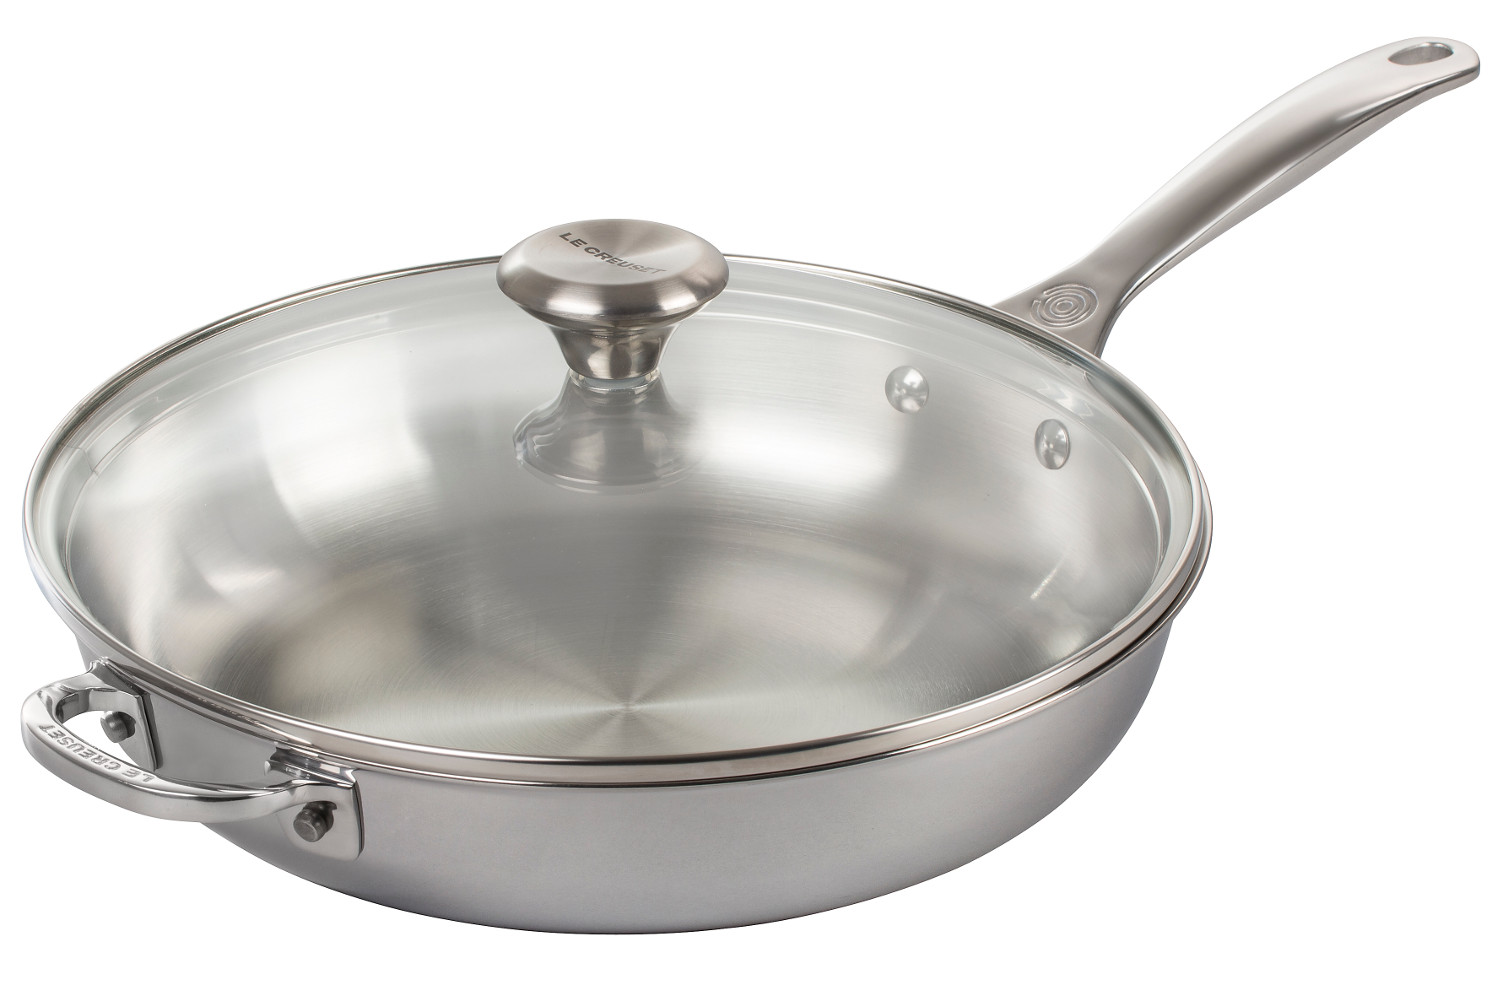 Le Creuset Premium Stainless Steel 11 inch Everyday Pan w/Glass Lid